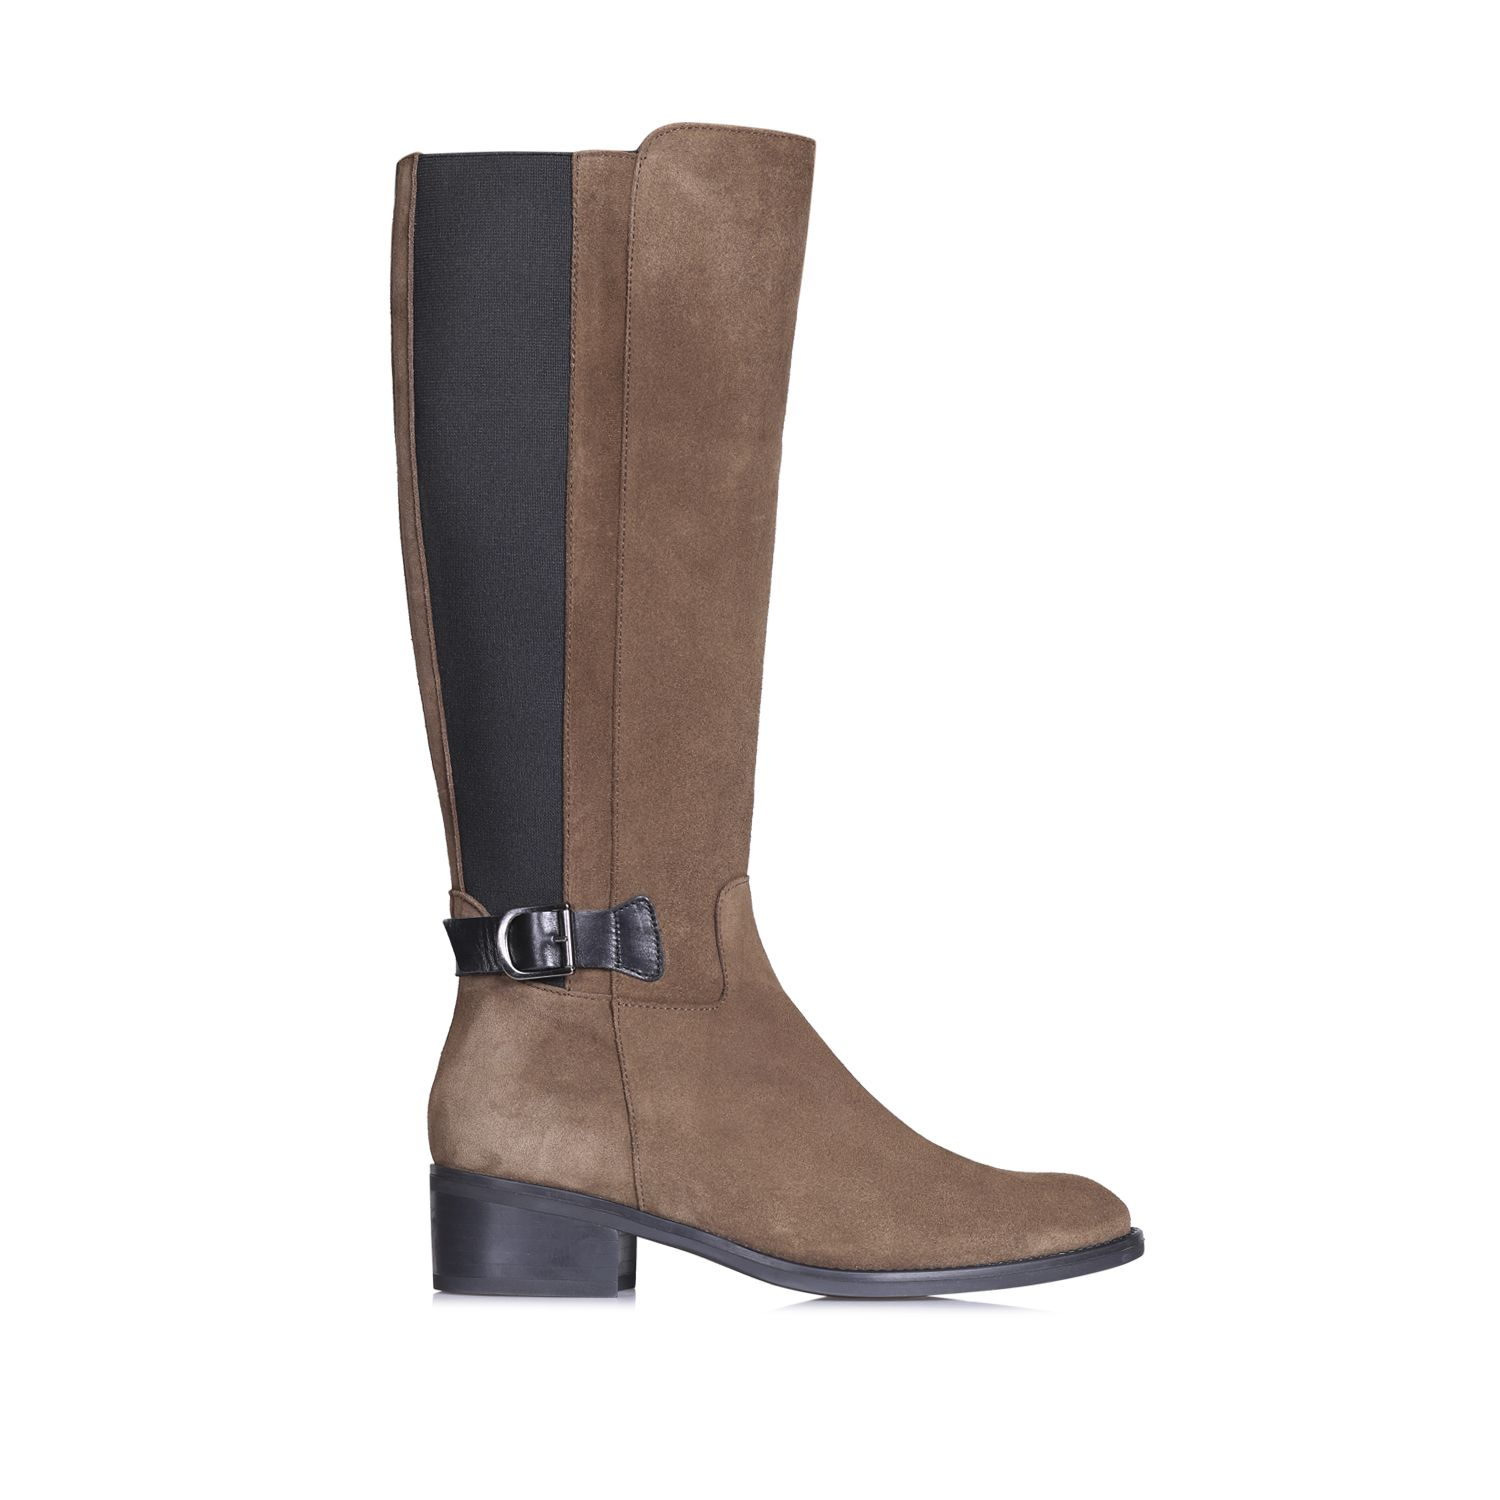 Suede boot for women - TACOMA-SY